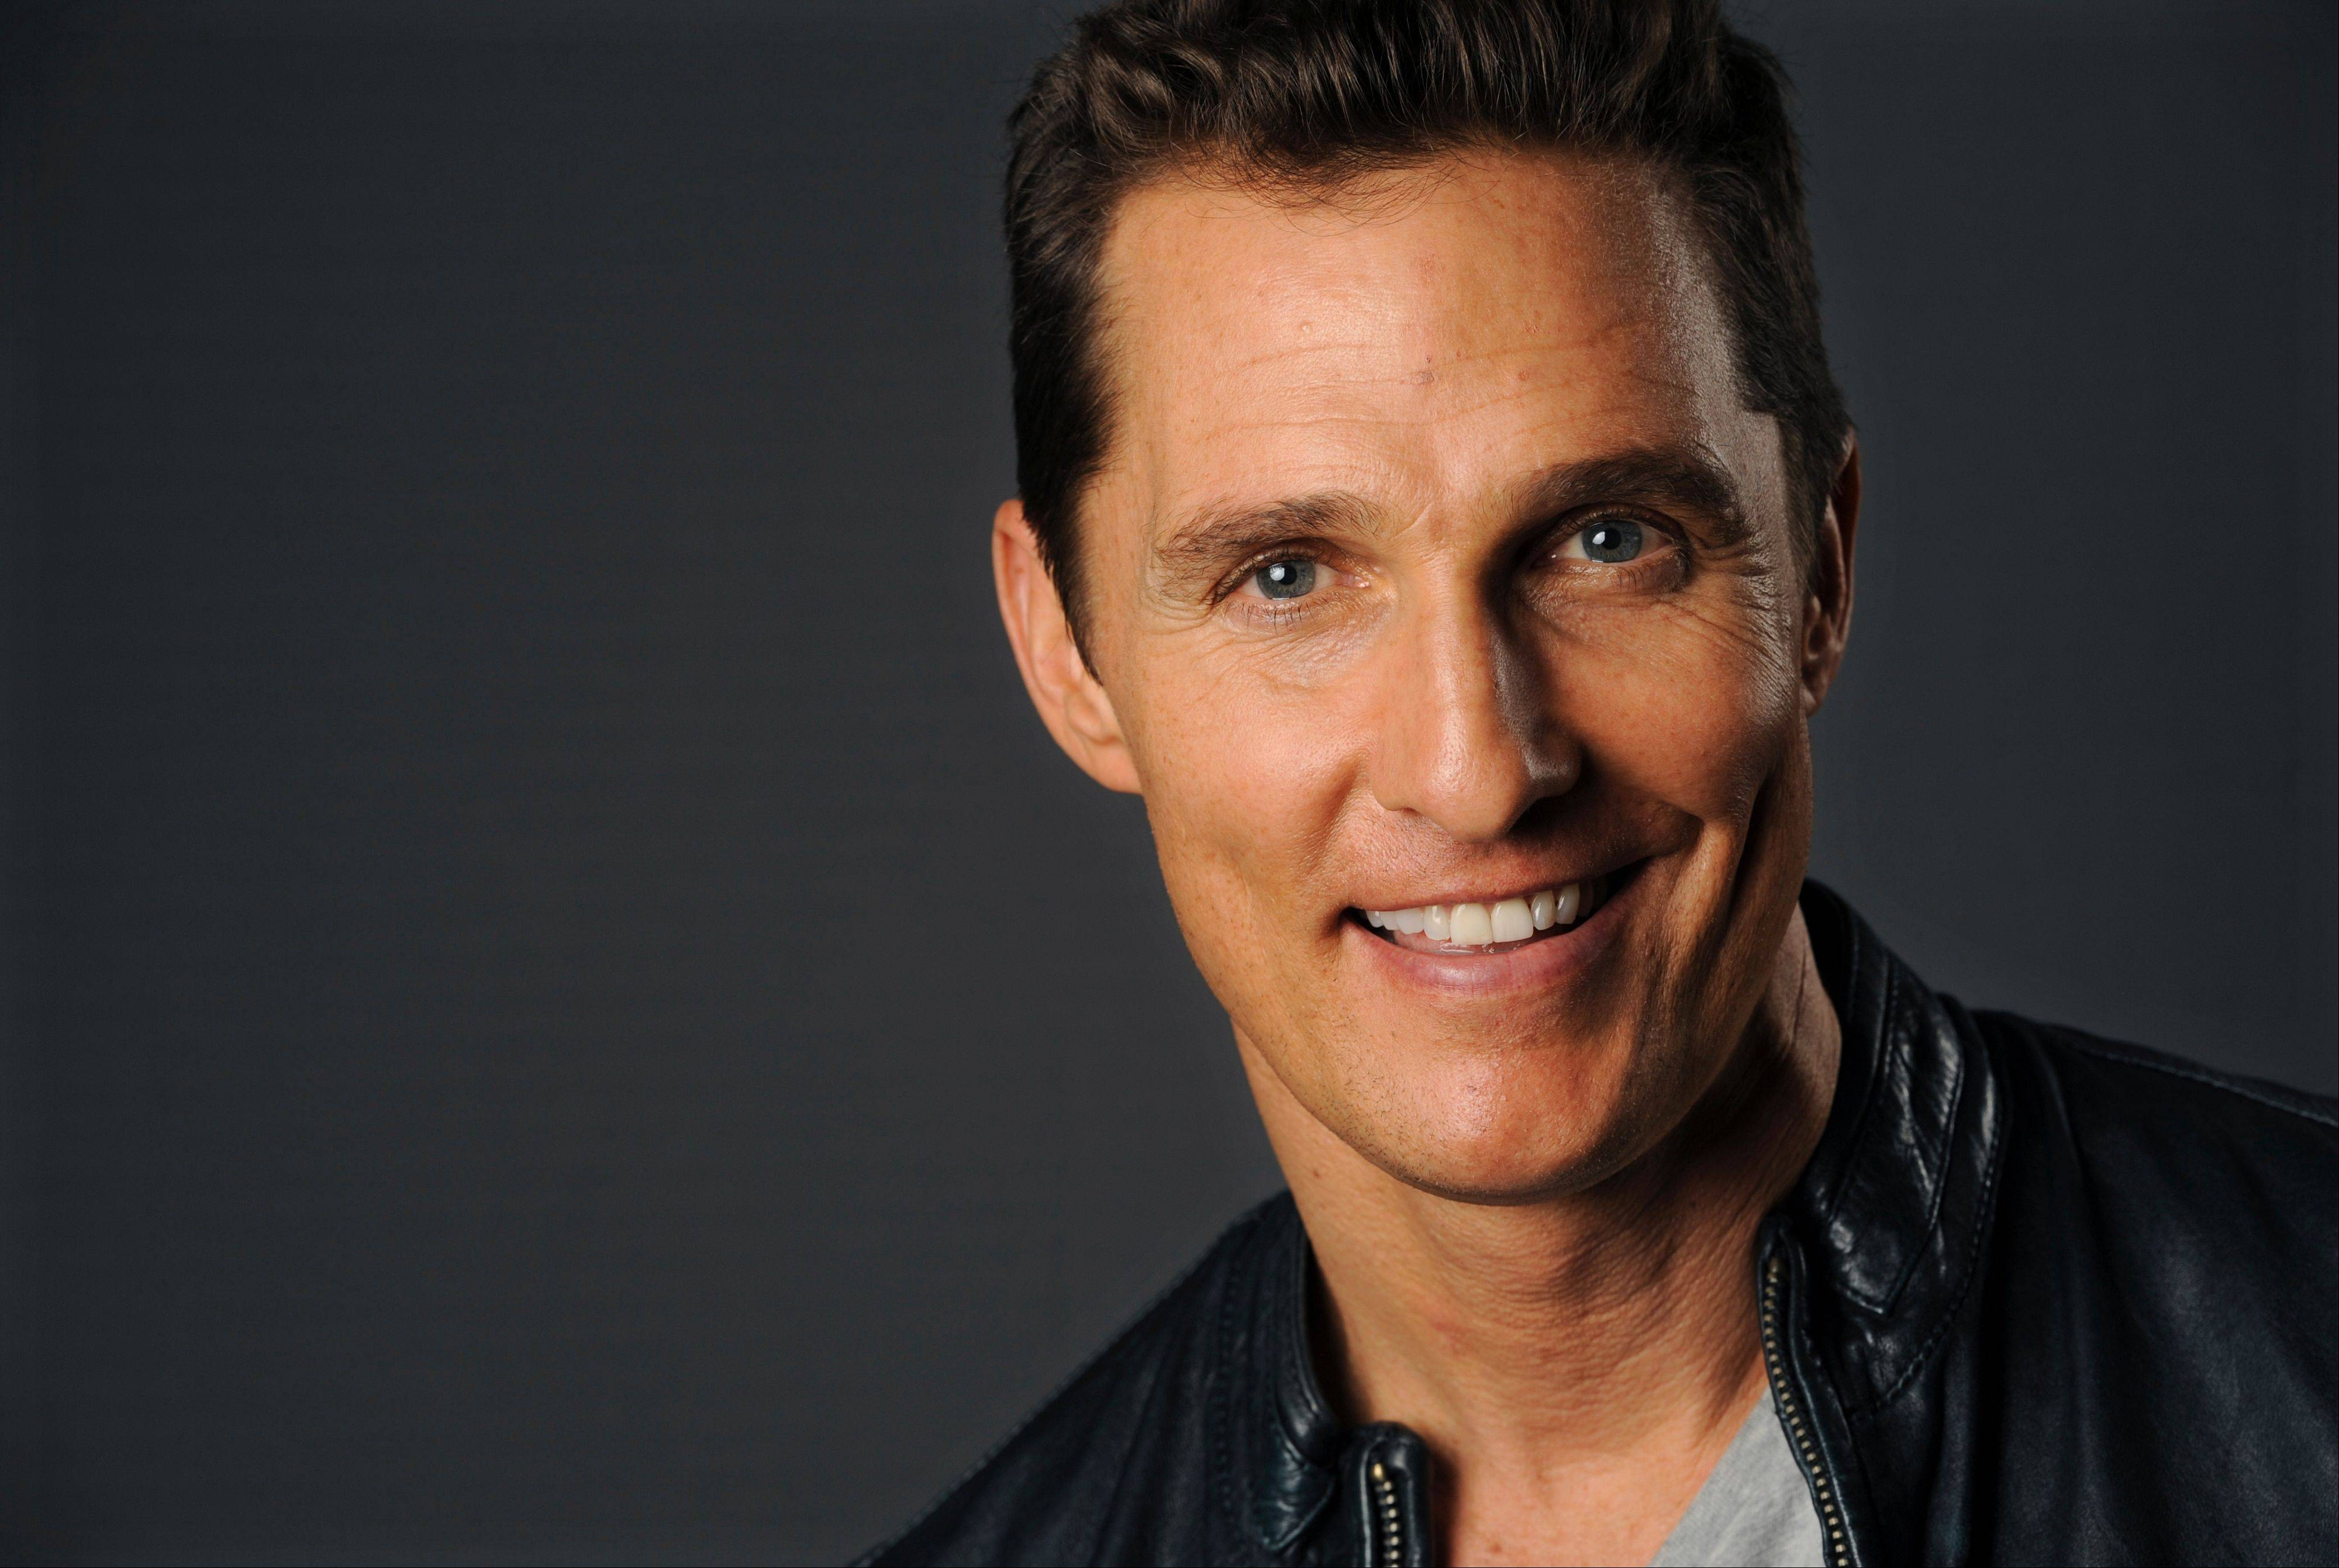 McConaughey immersed himself in 'Dallas' role